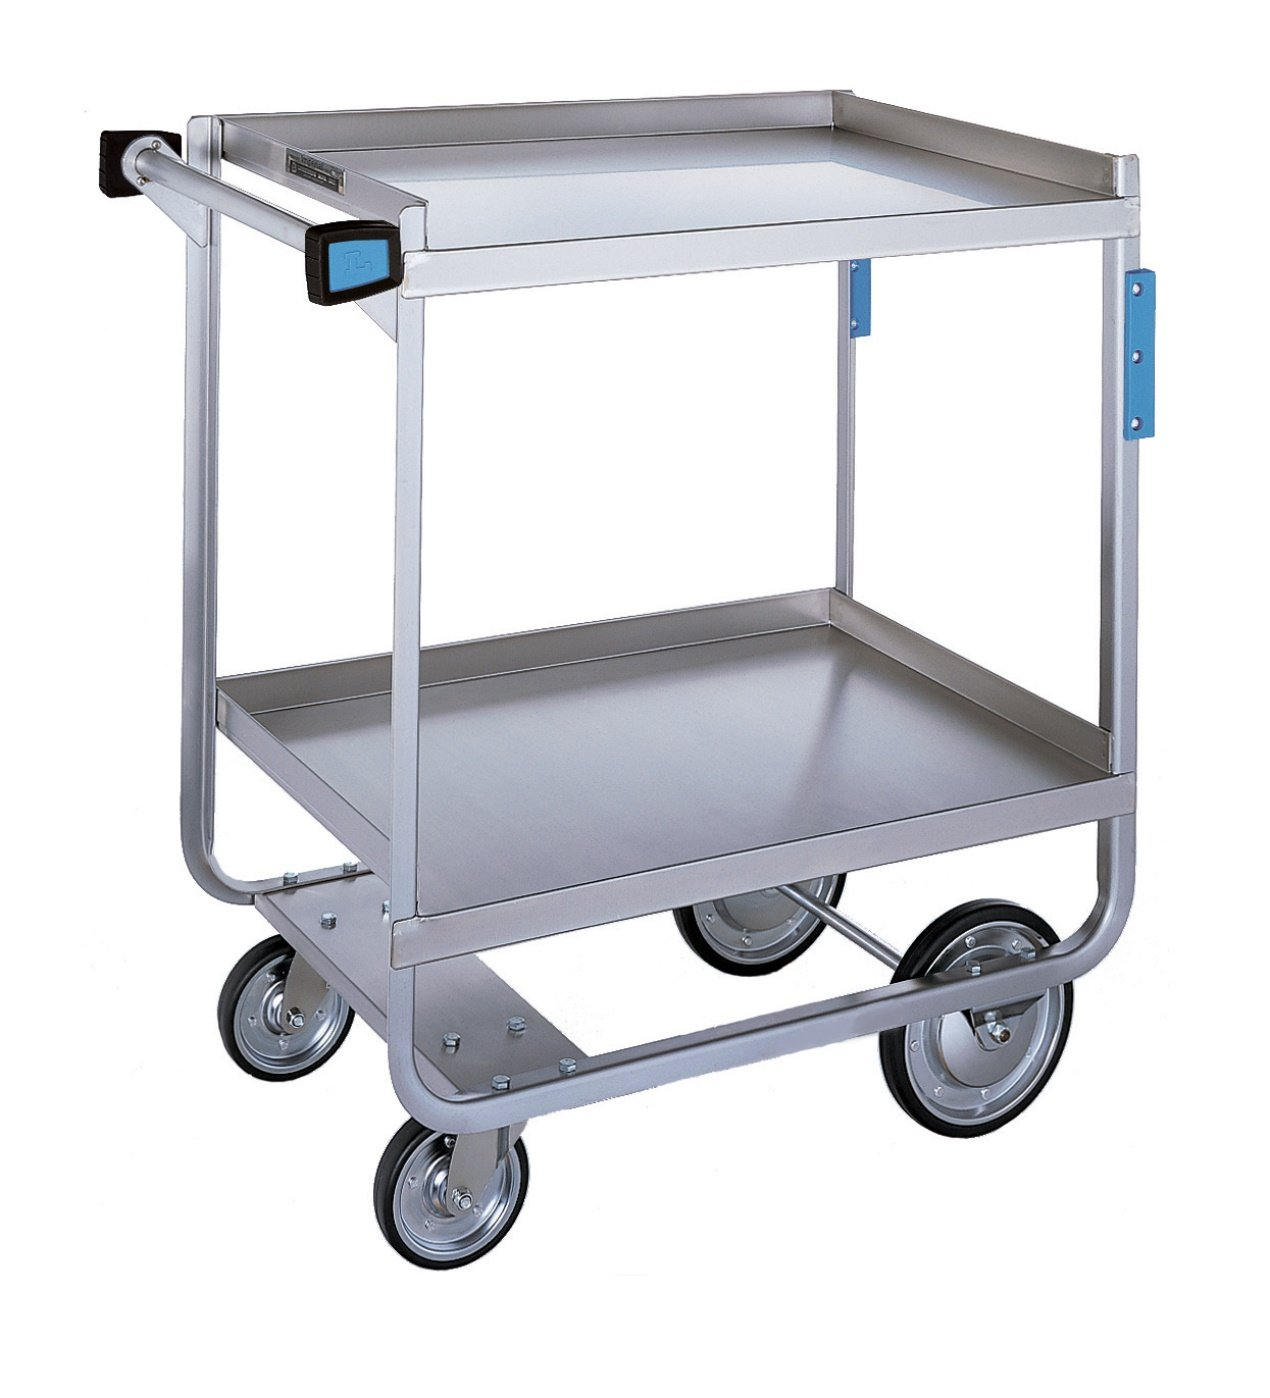 Lakeside 743 Heavy Duty Utility Cart, 2 Shelves, Stainless Steel, 700 lb Capacity, 22-3/8'' x 38-5/8'' x 37-1/8'' by Lakeside Manufacturing (Image #1)